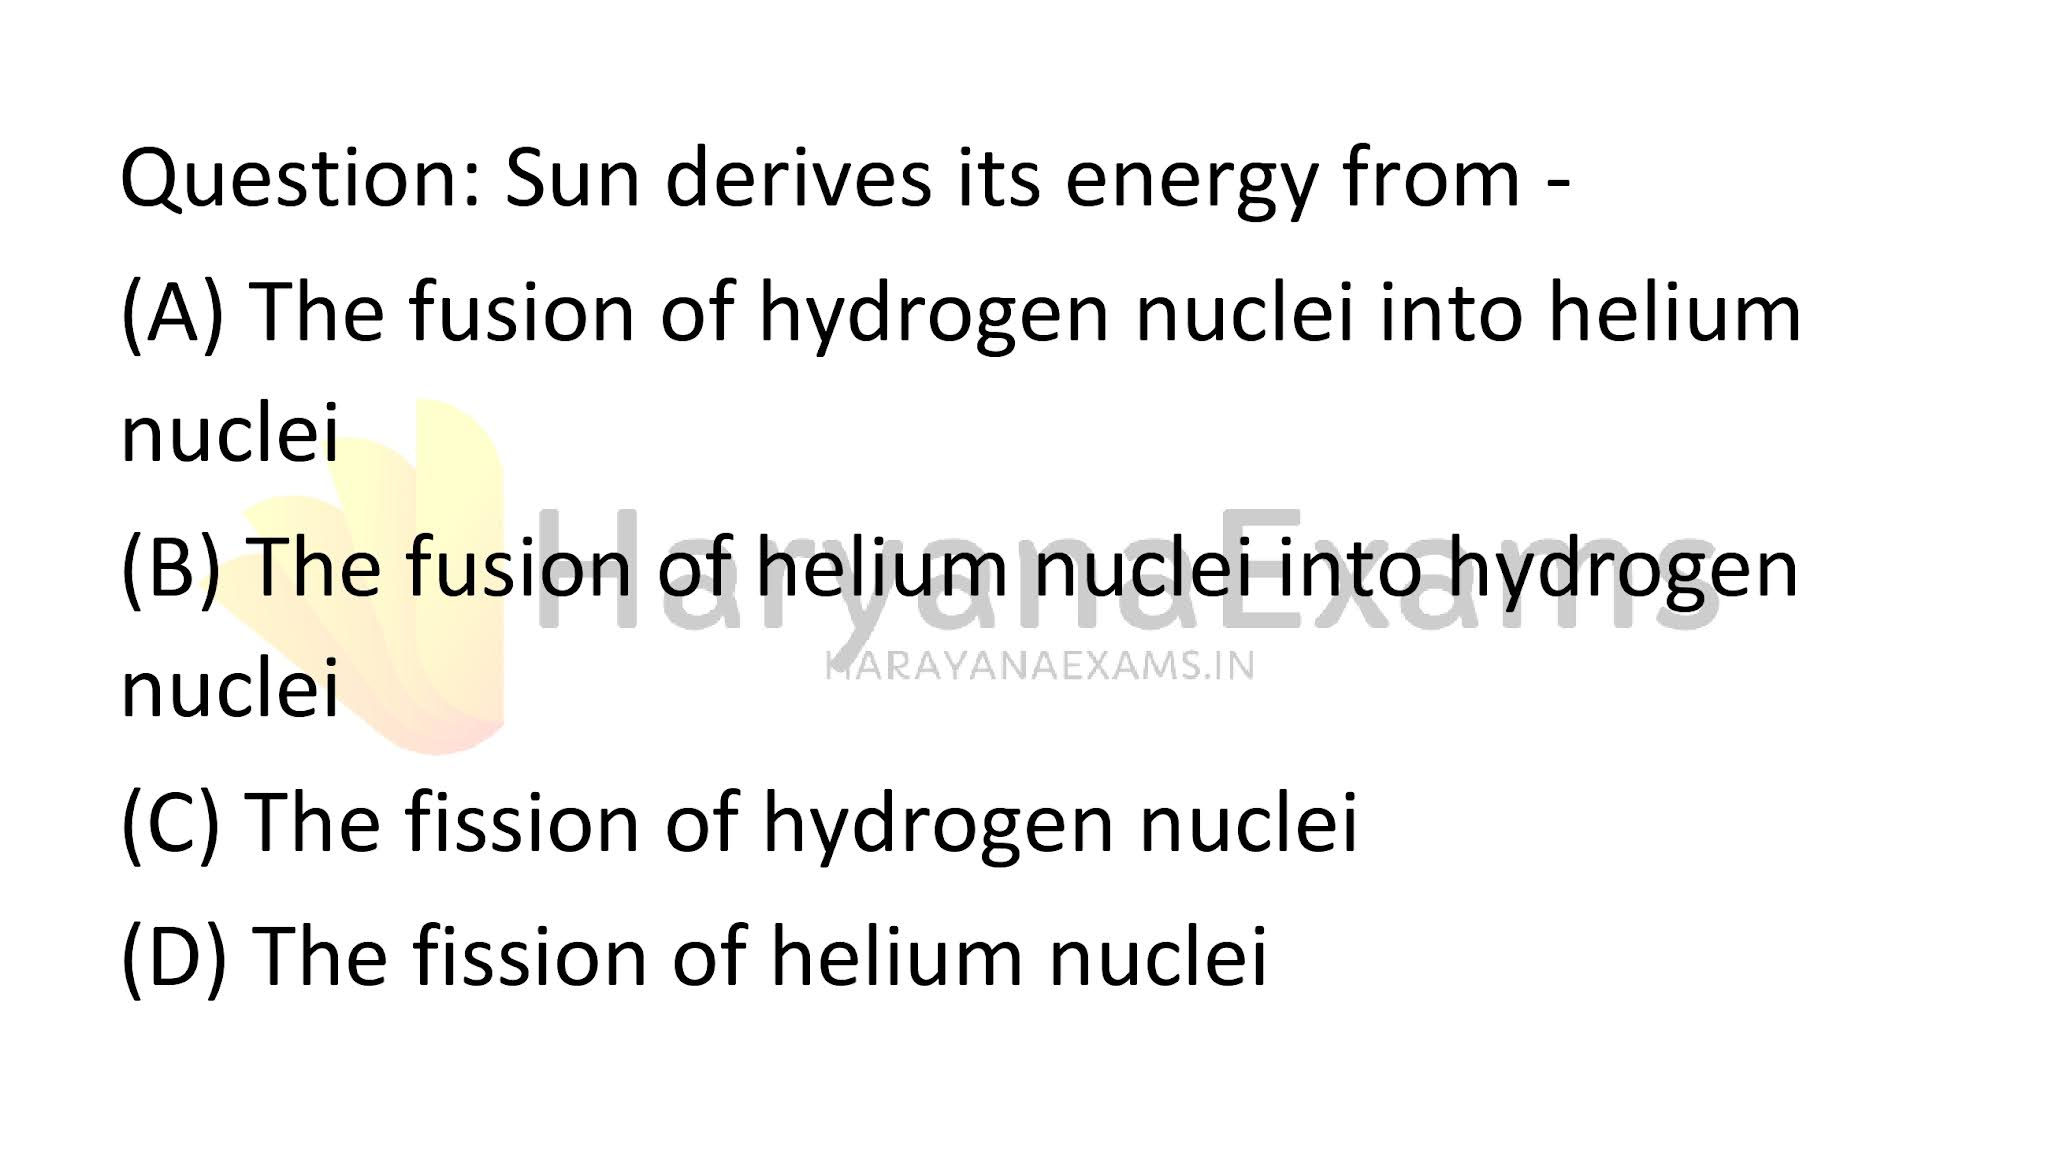 Sun derives its energy from -